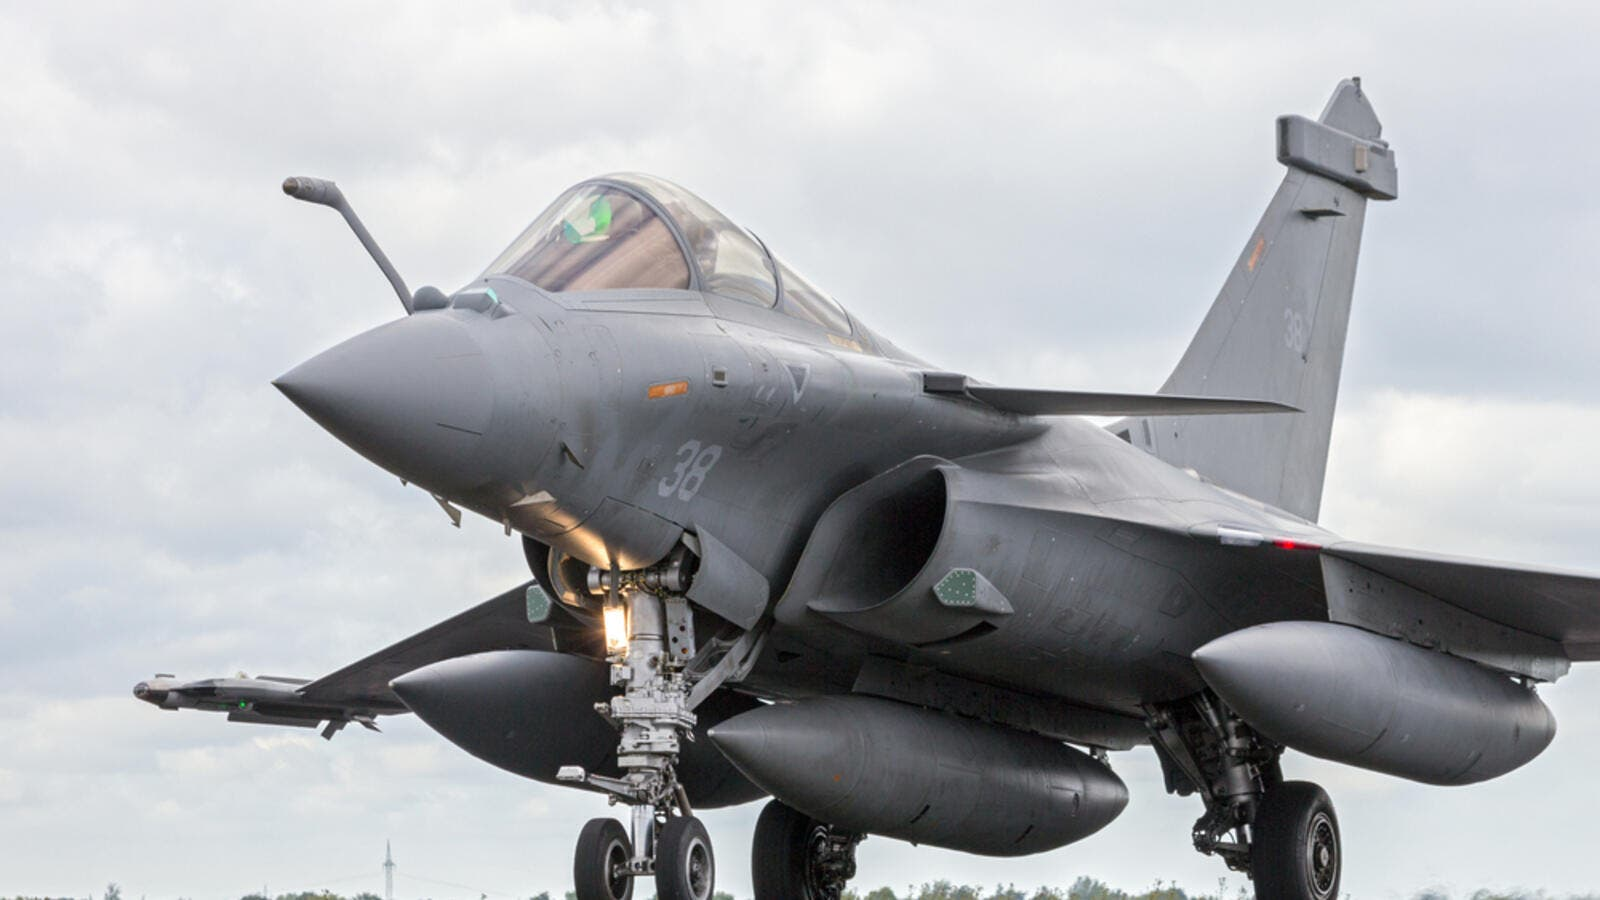 French Air Force Dassault Rafale during the NATO Tiger Meet at Schleswig-Jagel airbase. (Shutterstock/ File Photo)